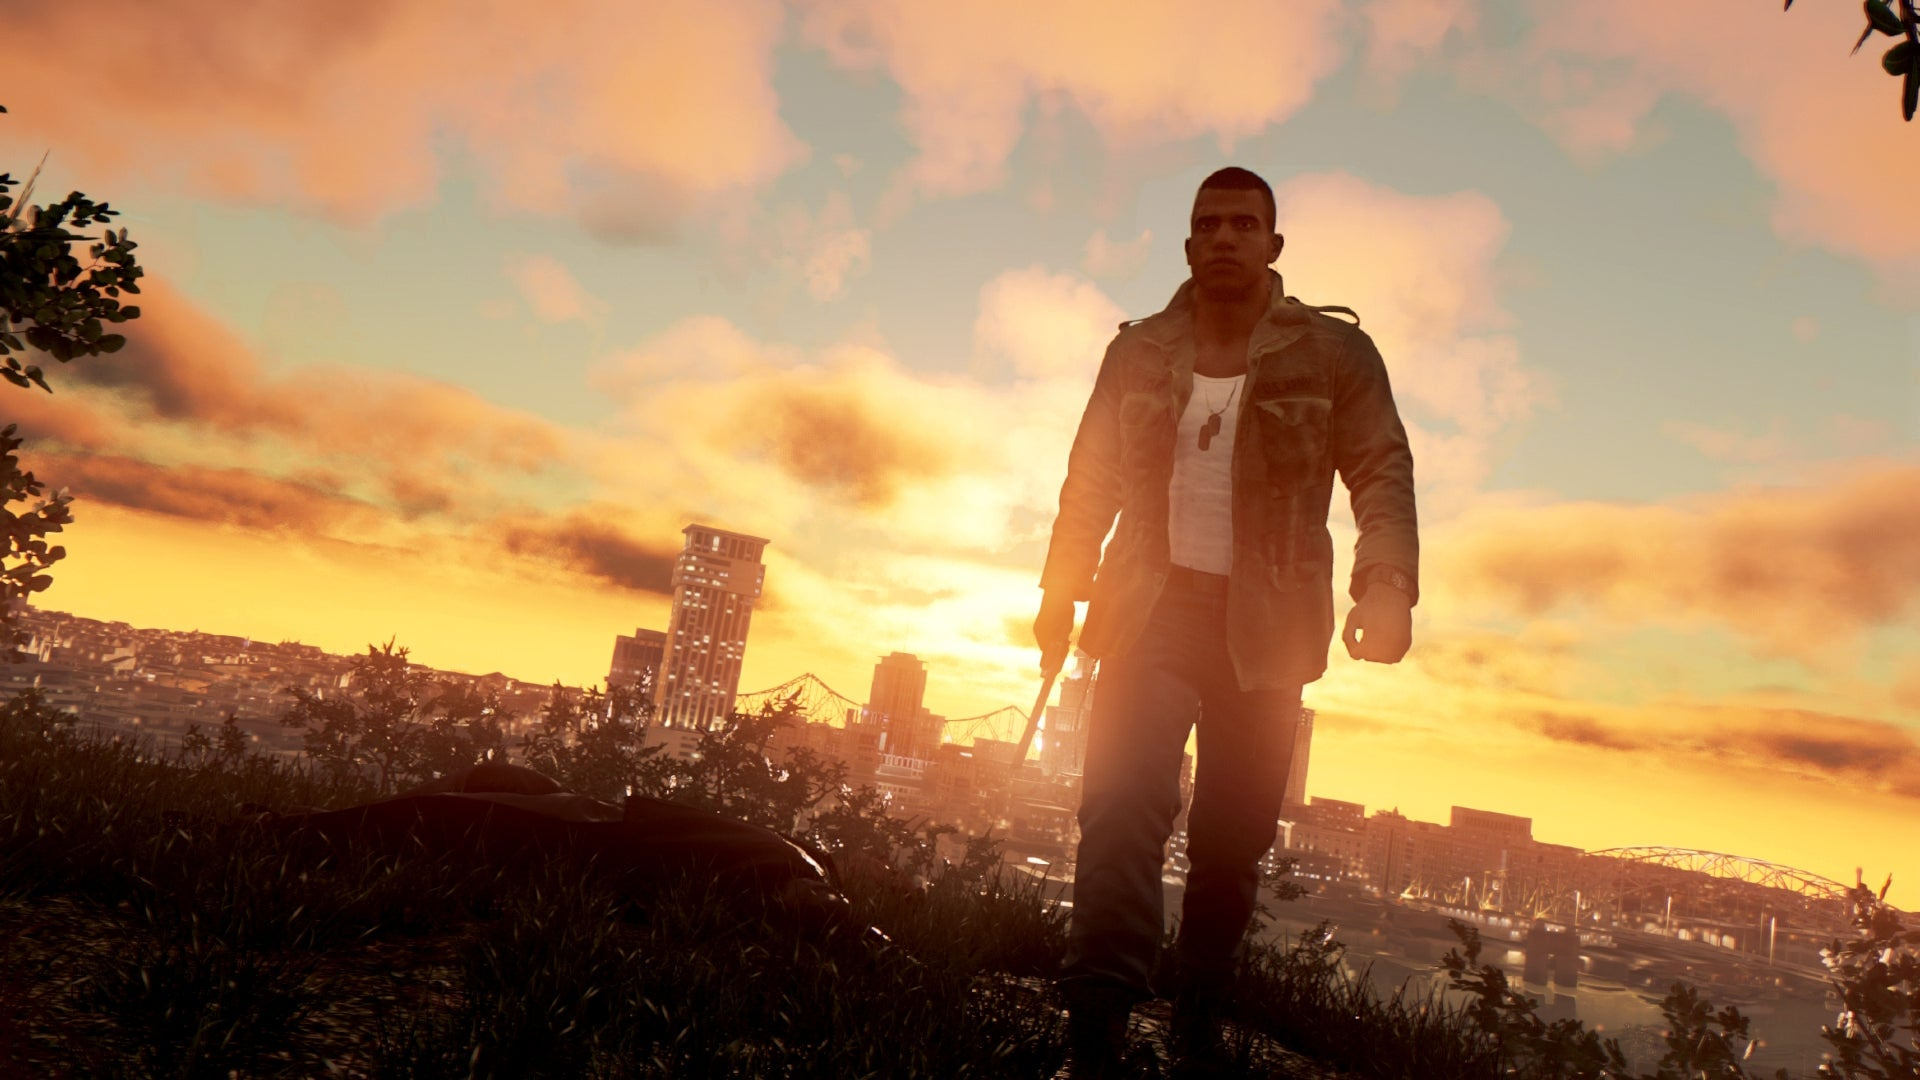 How The Makers OfMafia 3Lost Their Way